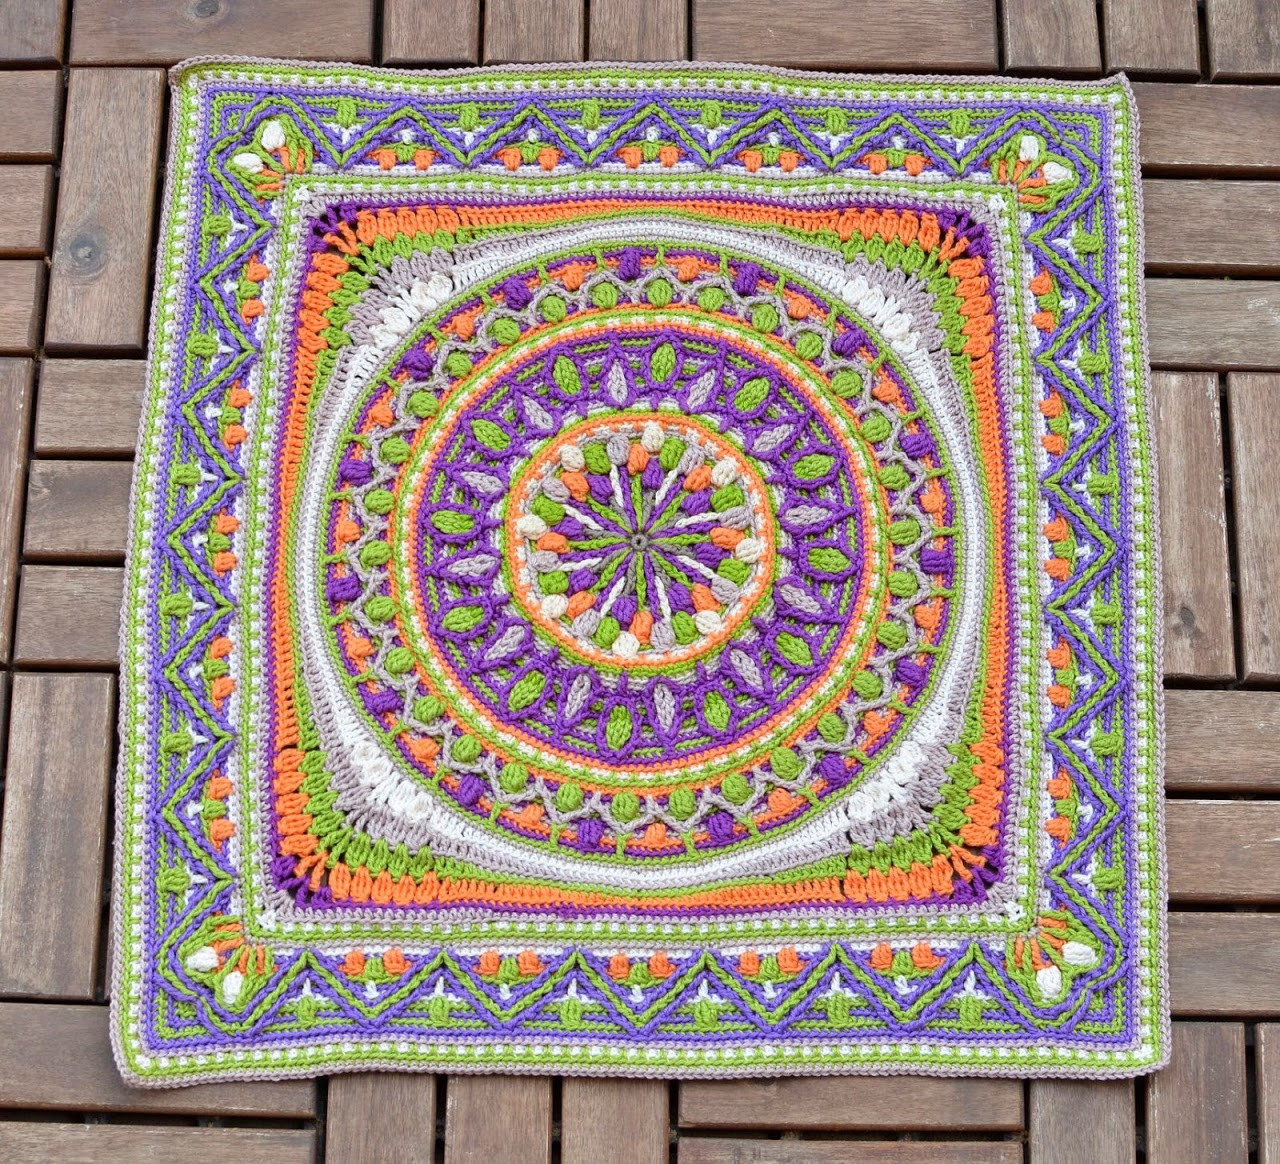 Crochet Mandalas Best Of Crochet Squares or Second Life Of Dandelion Mandala Of Incredible 41 Pics Crochet Mandalas